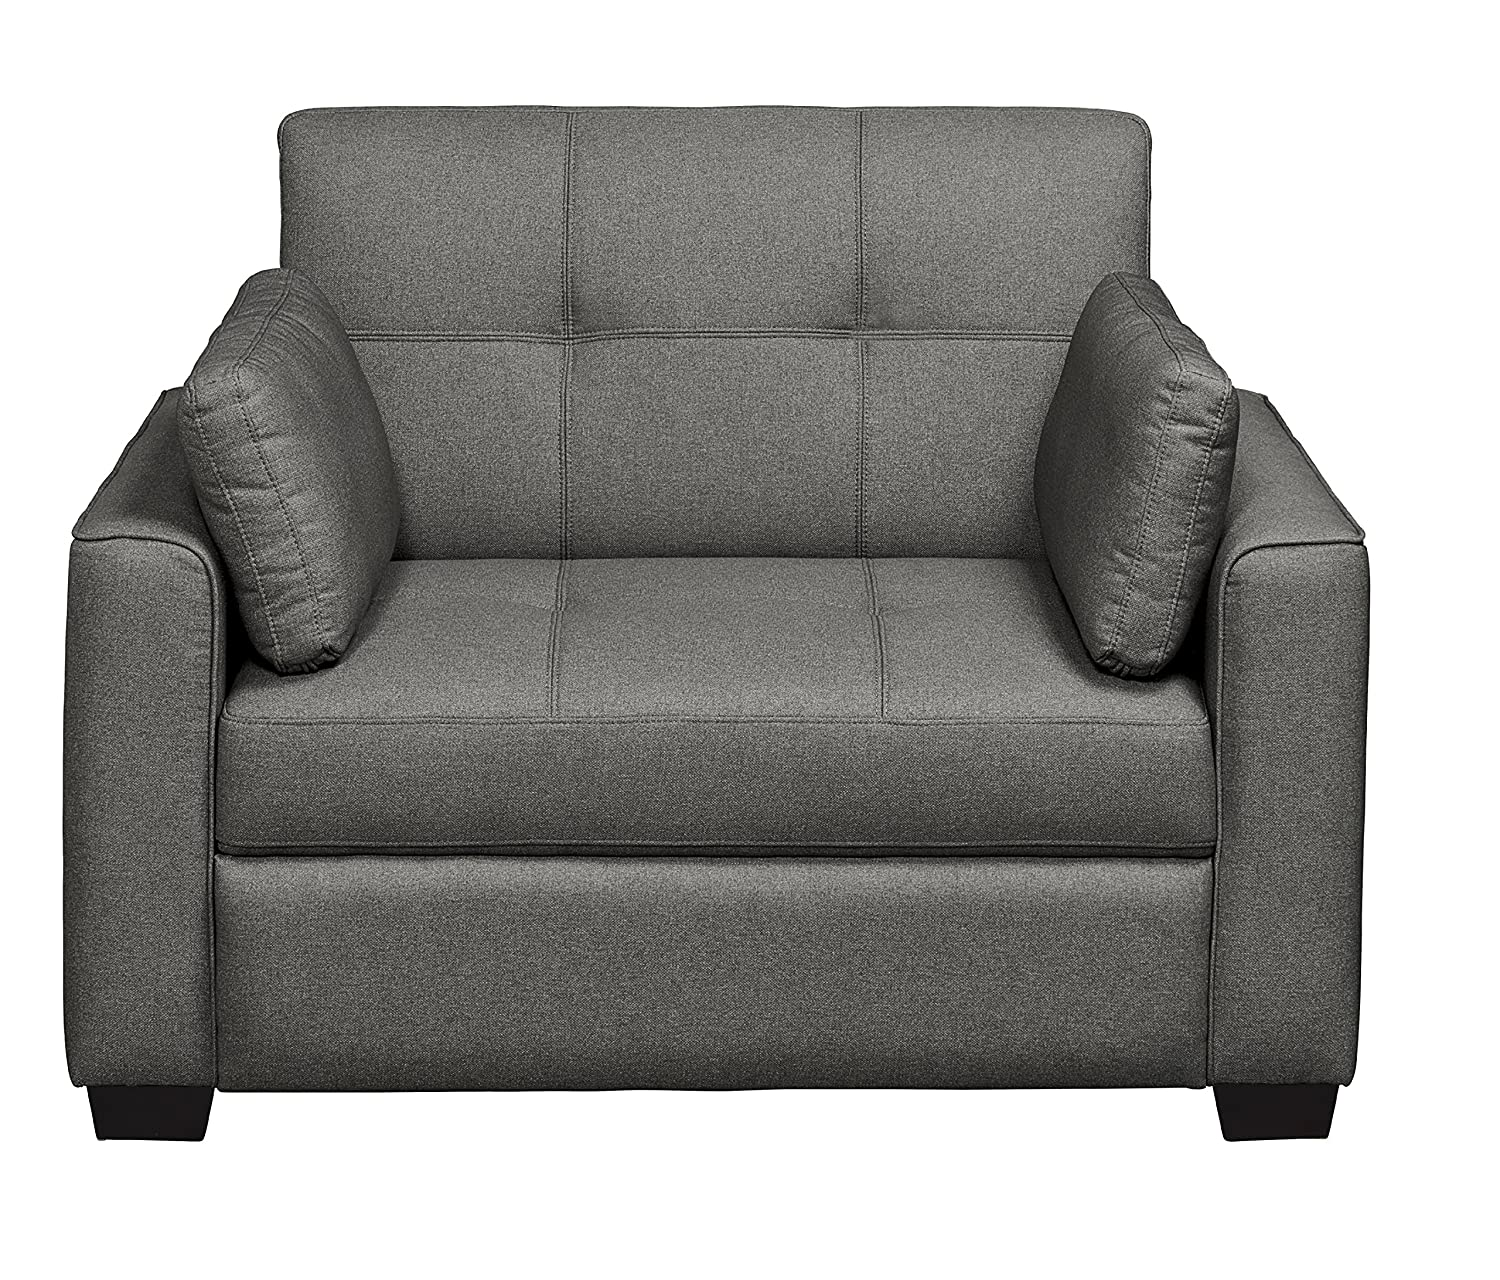 amazon com mechali products furniture serta sofa sleeper rh amazon com